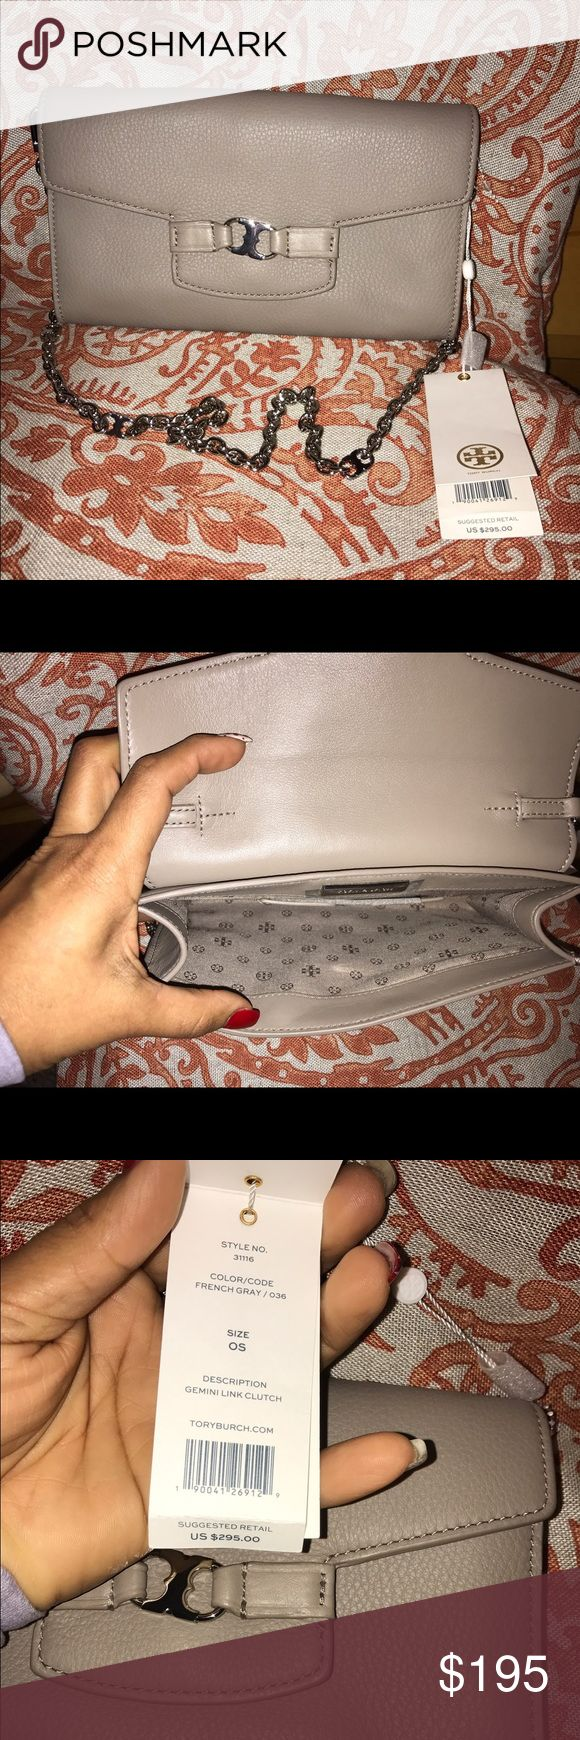 Tory Burch handbag!! Gray Tory Burch Gemini Link Clutch. Inspired by Tory Burch's twin sons and her zodiac sign, Gemini, this beautifully crafted leather clutch features an optional chain-link strap that allows you to style it as a crossbody when you're running around town. Tory Burch Bags Mini Bags